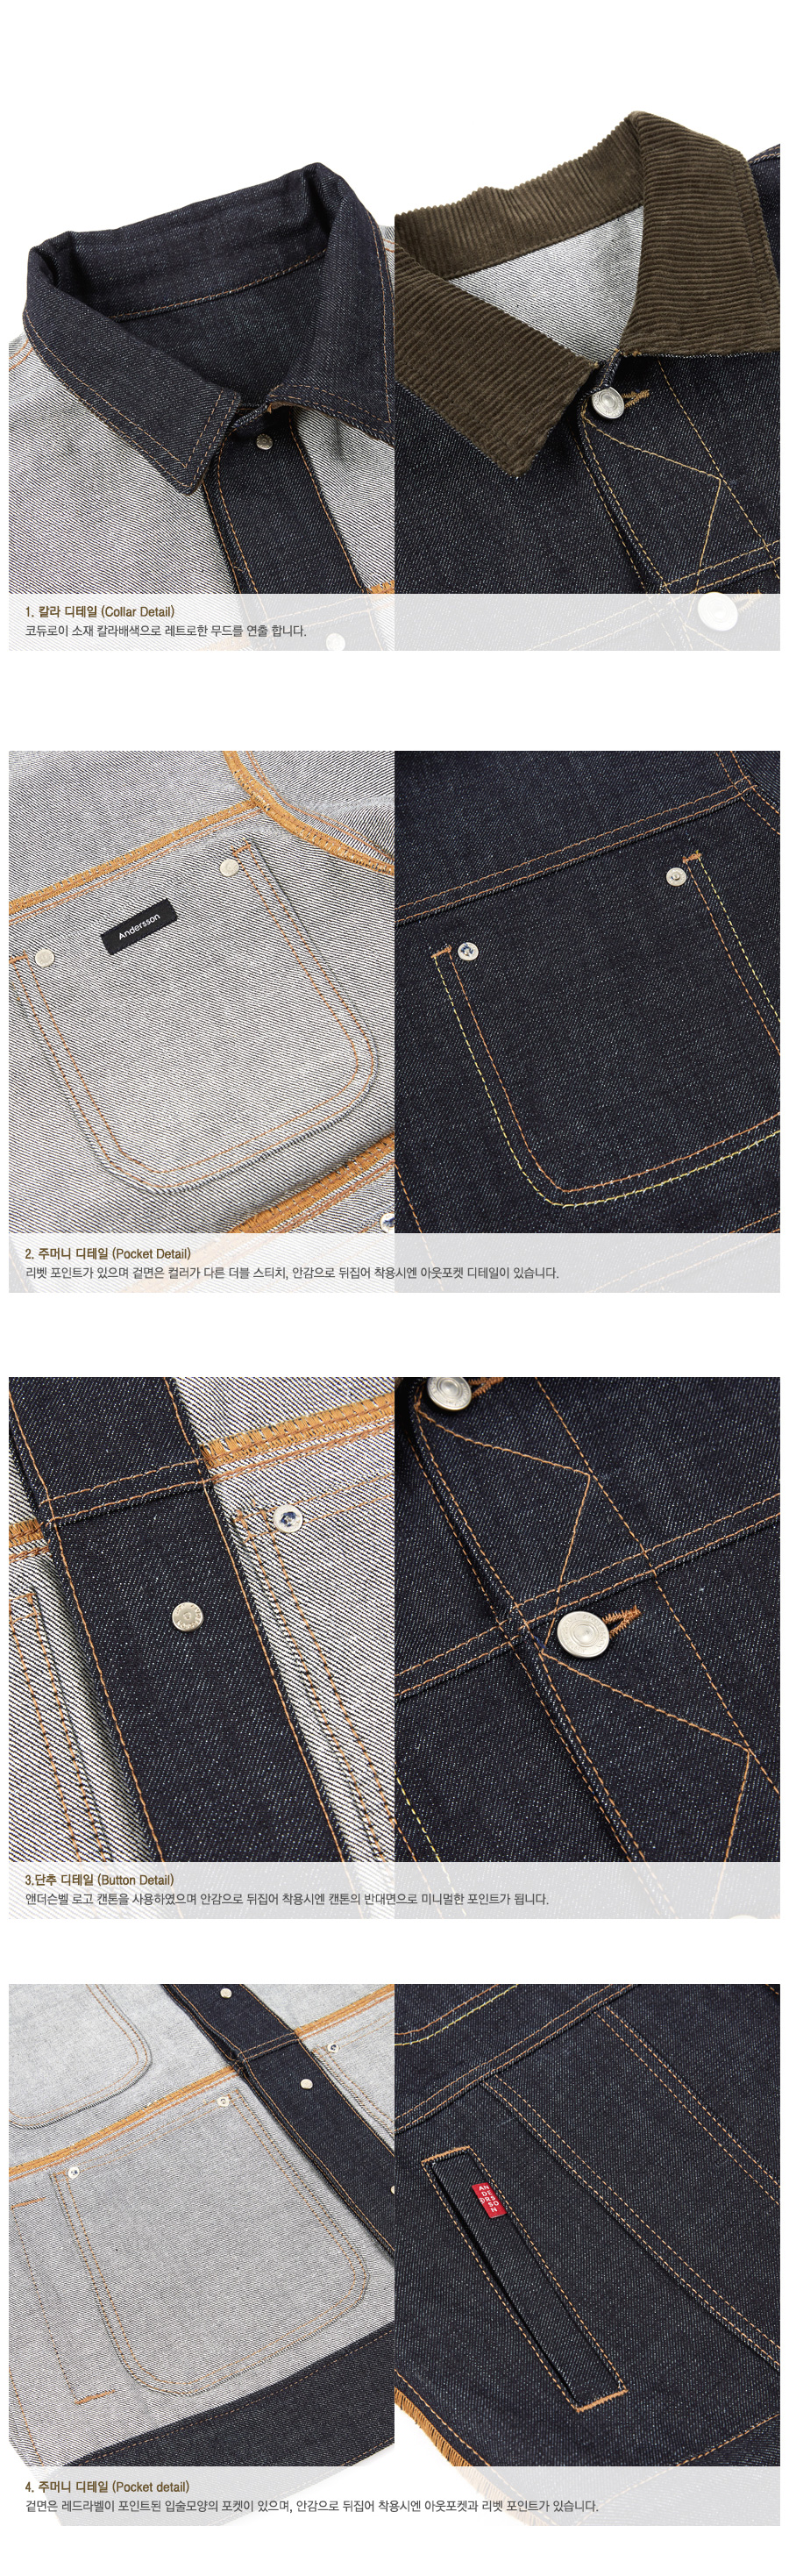 UNISEX INSIDE OUT DENIM JACKET id17.jpg